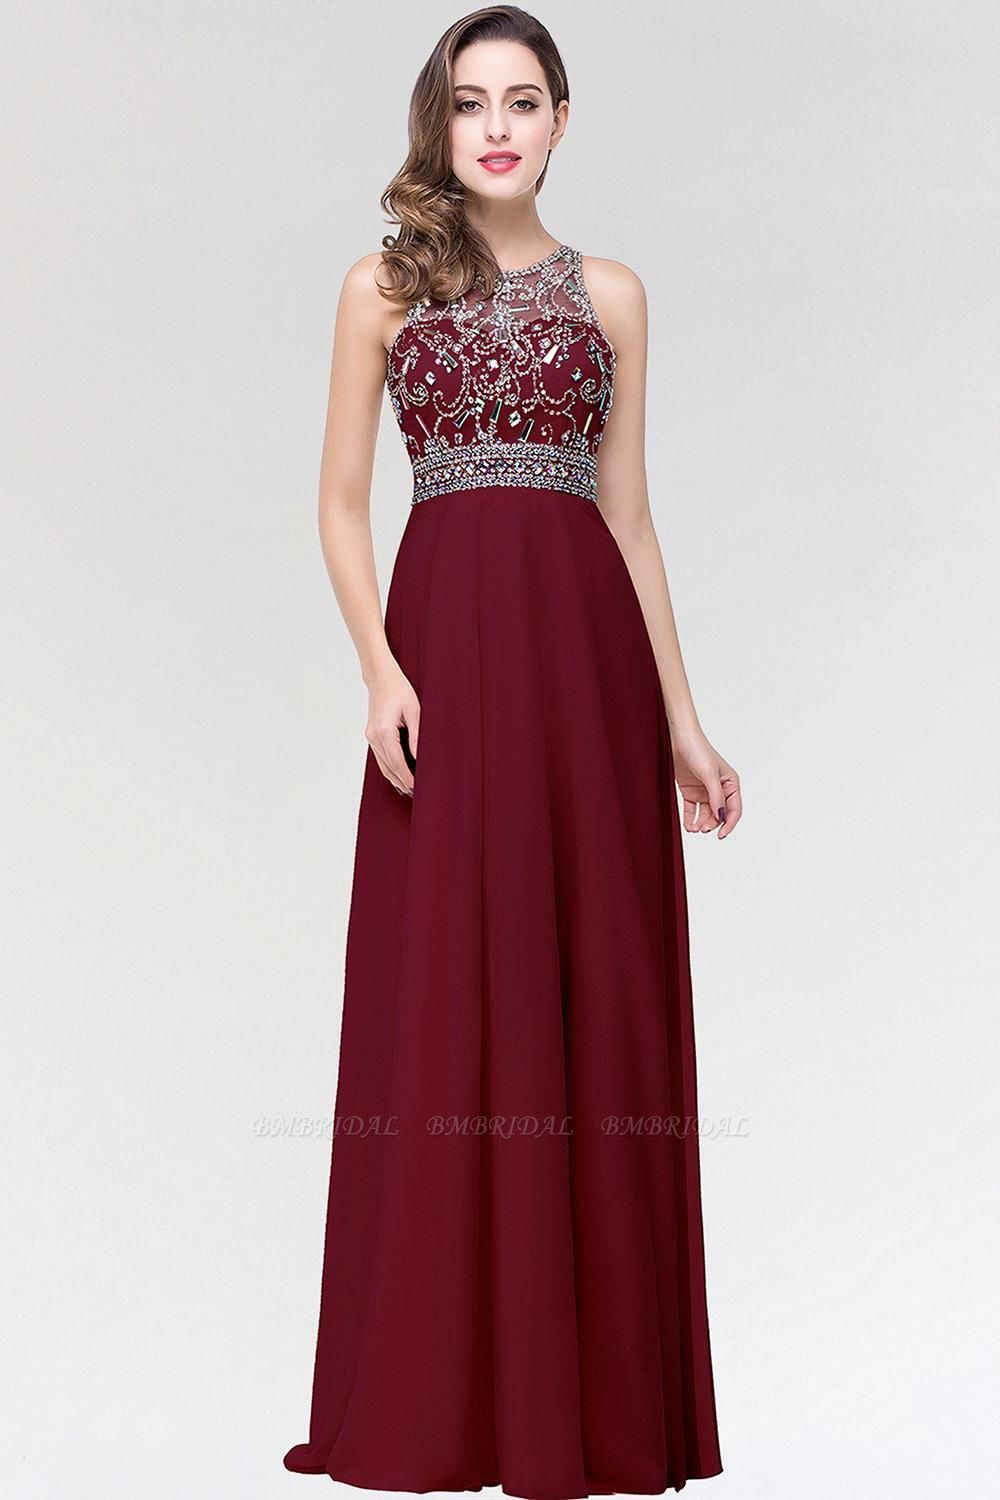 BMbridal A-line Jewel Chiffon Prom Dress with Beading